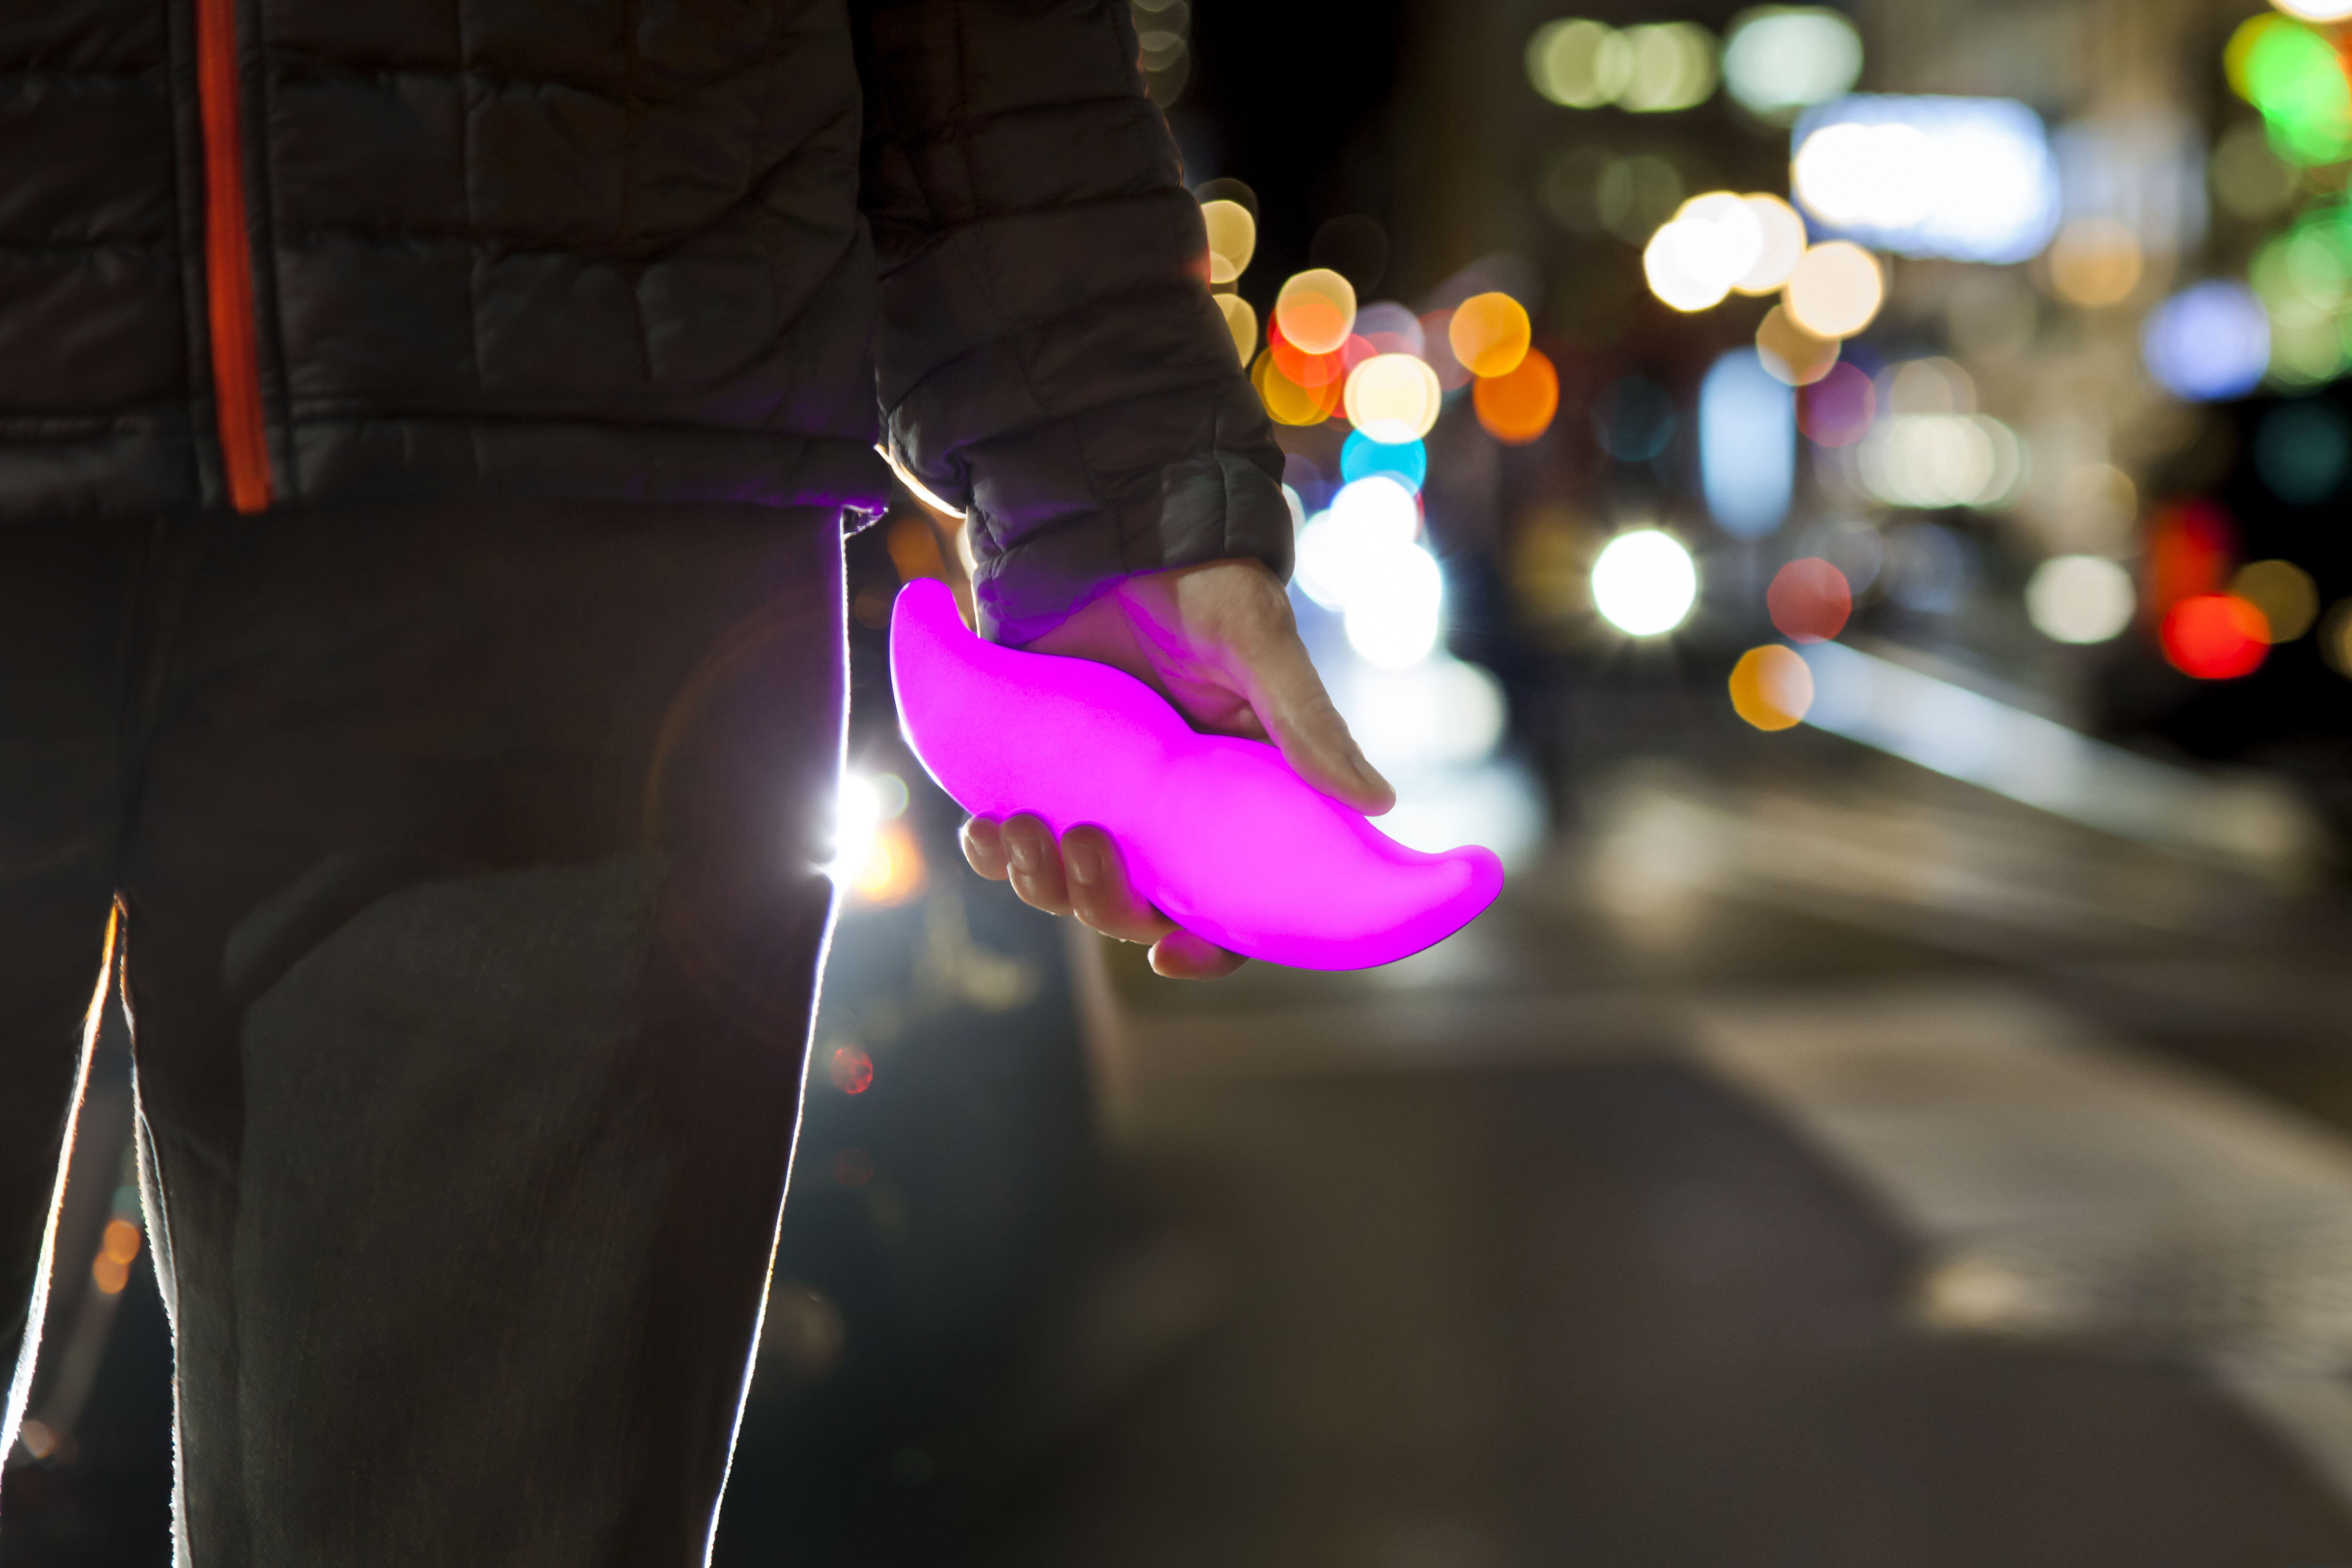 Ride-hailing service Lyft distinguishes itself with a glowing pink mustache that drivers place on their dashboard.